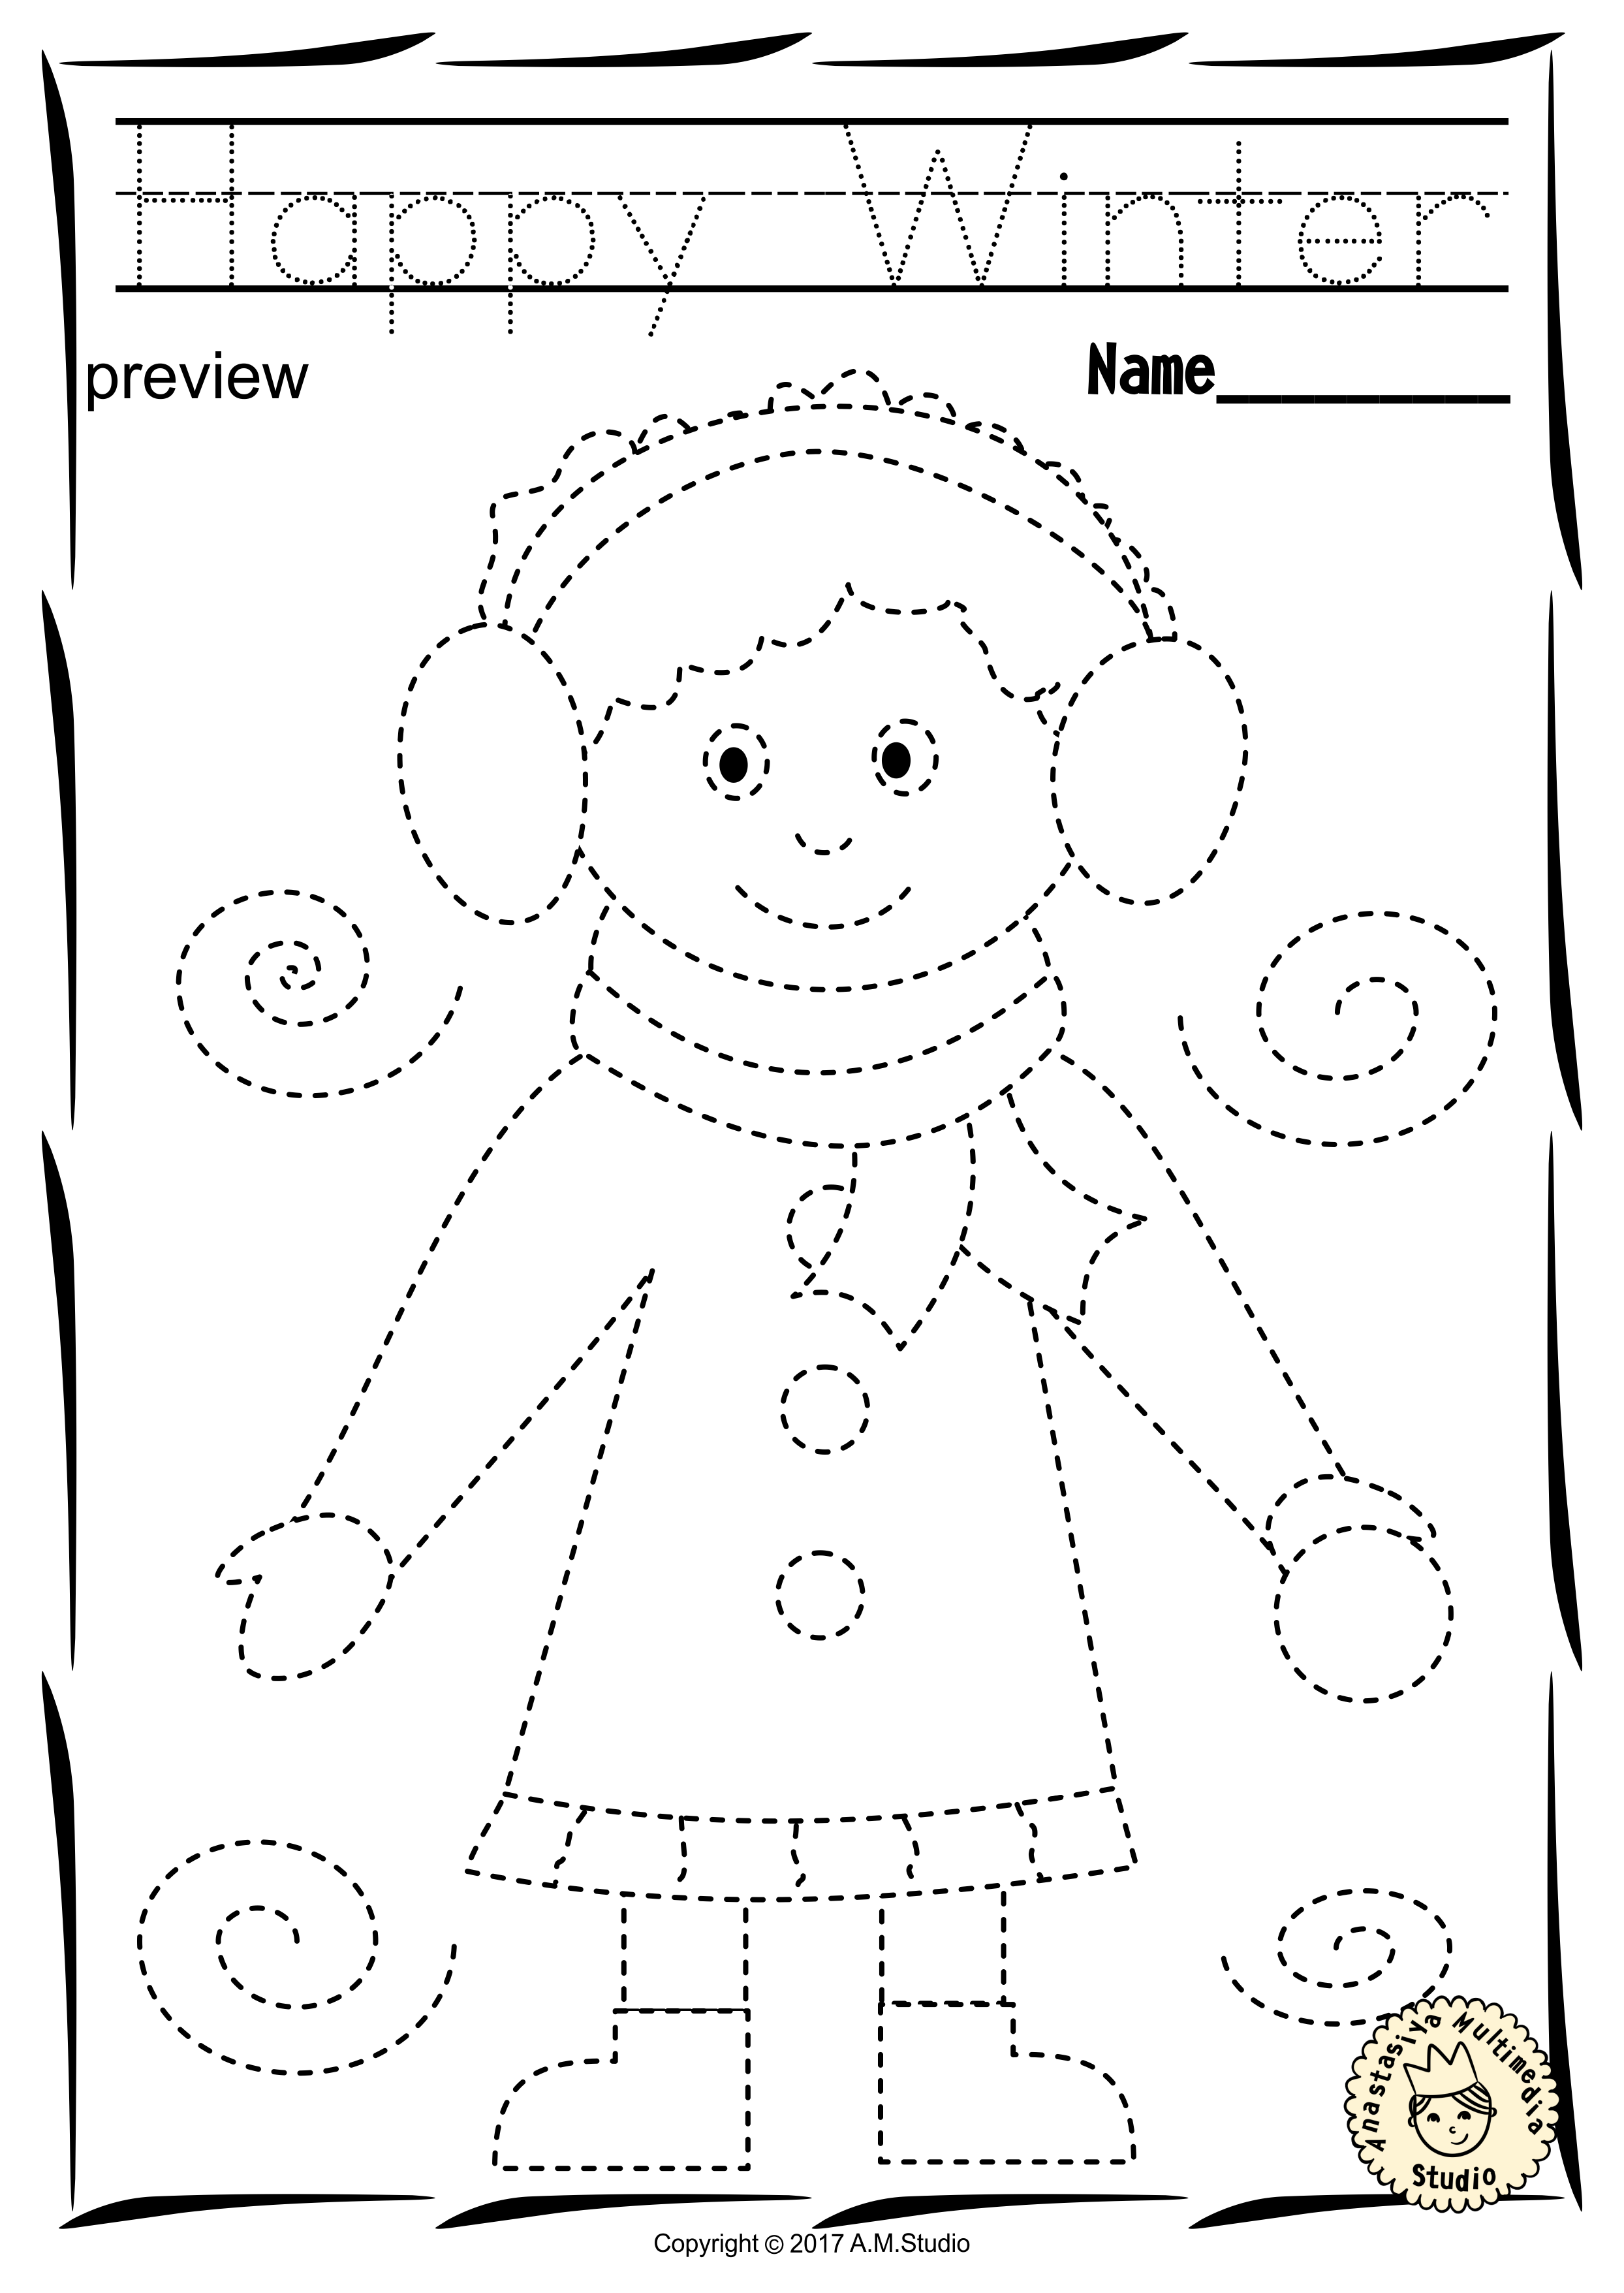 coloring worksheets for kindergarten pdf preschool coloring pages pdf at getcoloringscom free worksheets for coloring pdf kindergarten